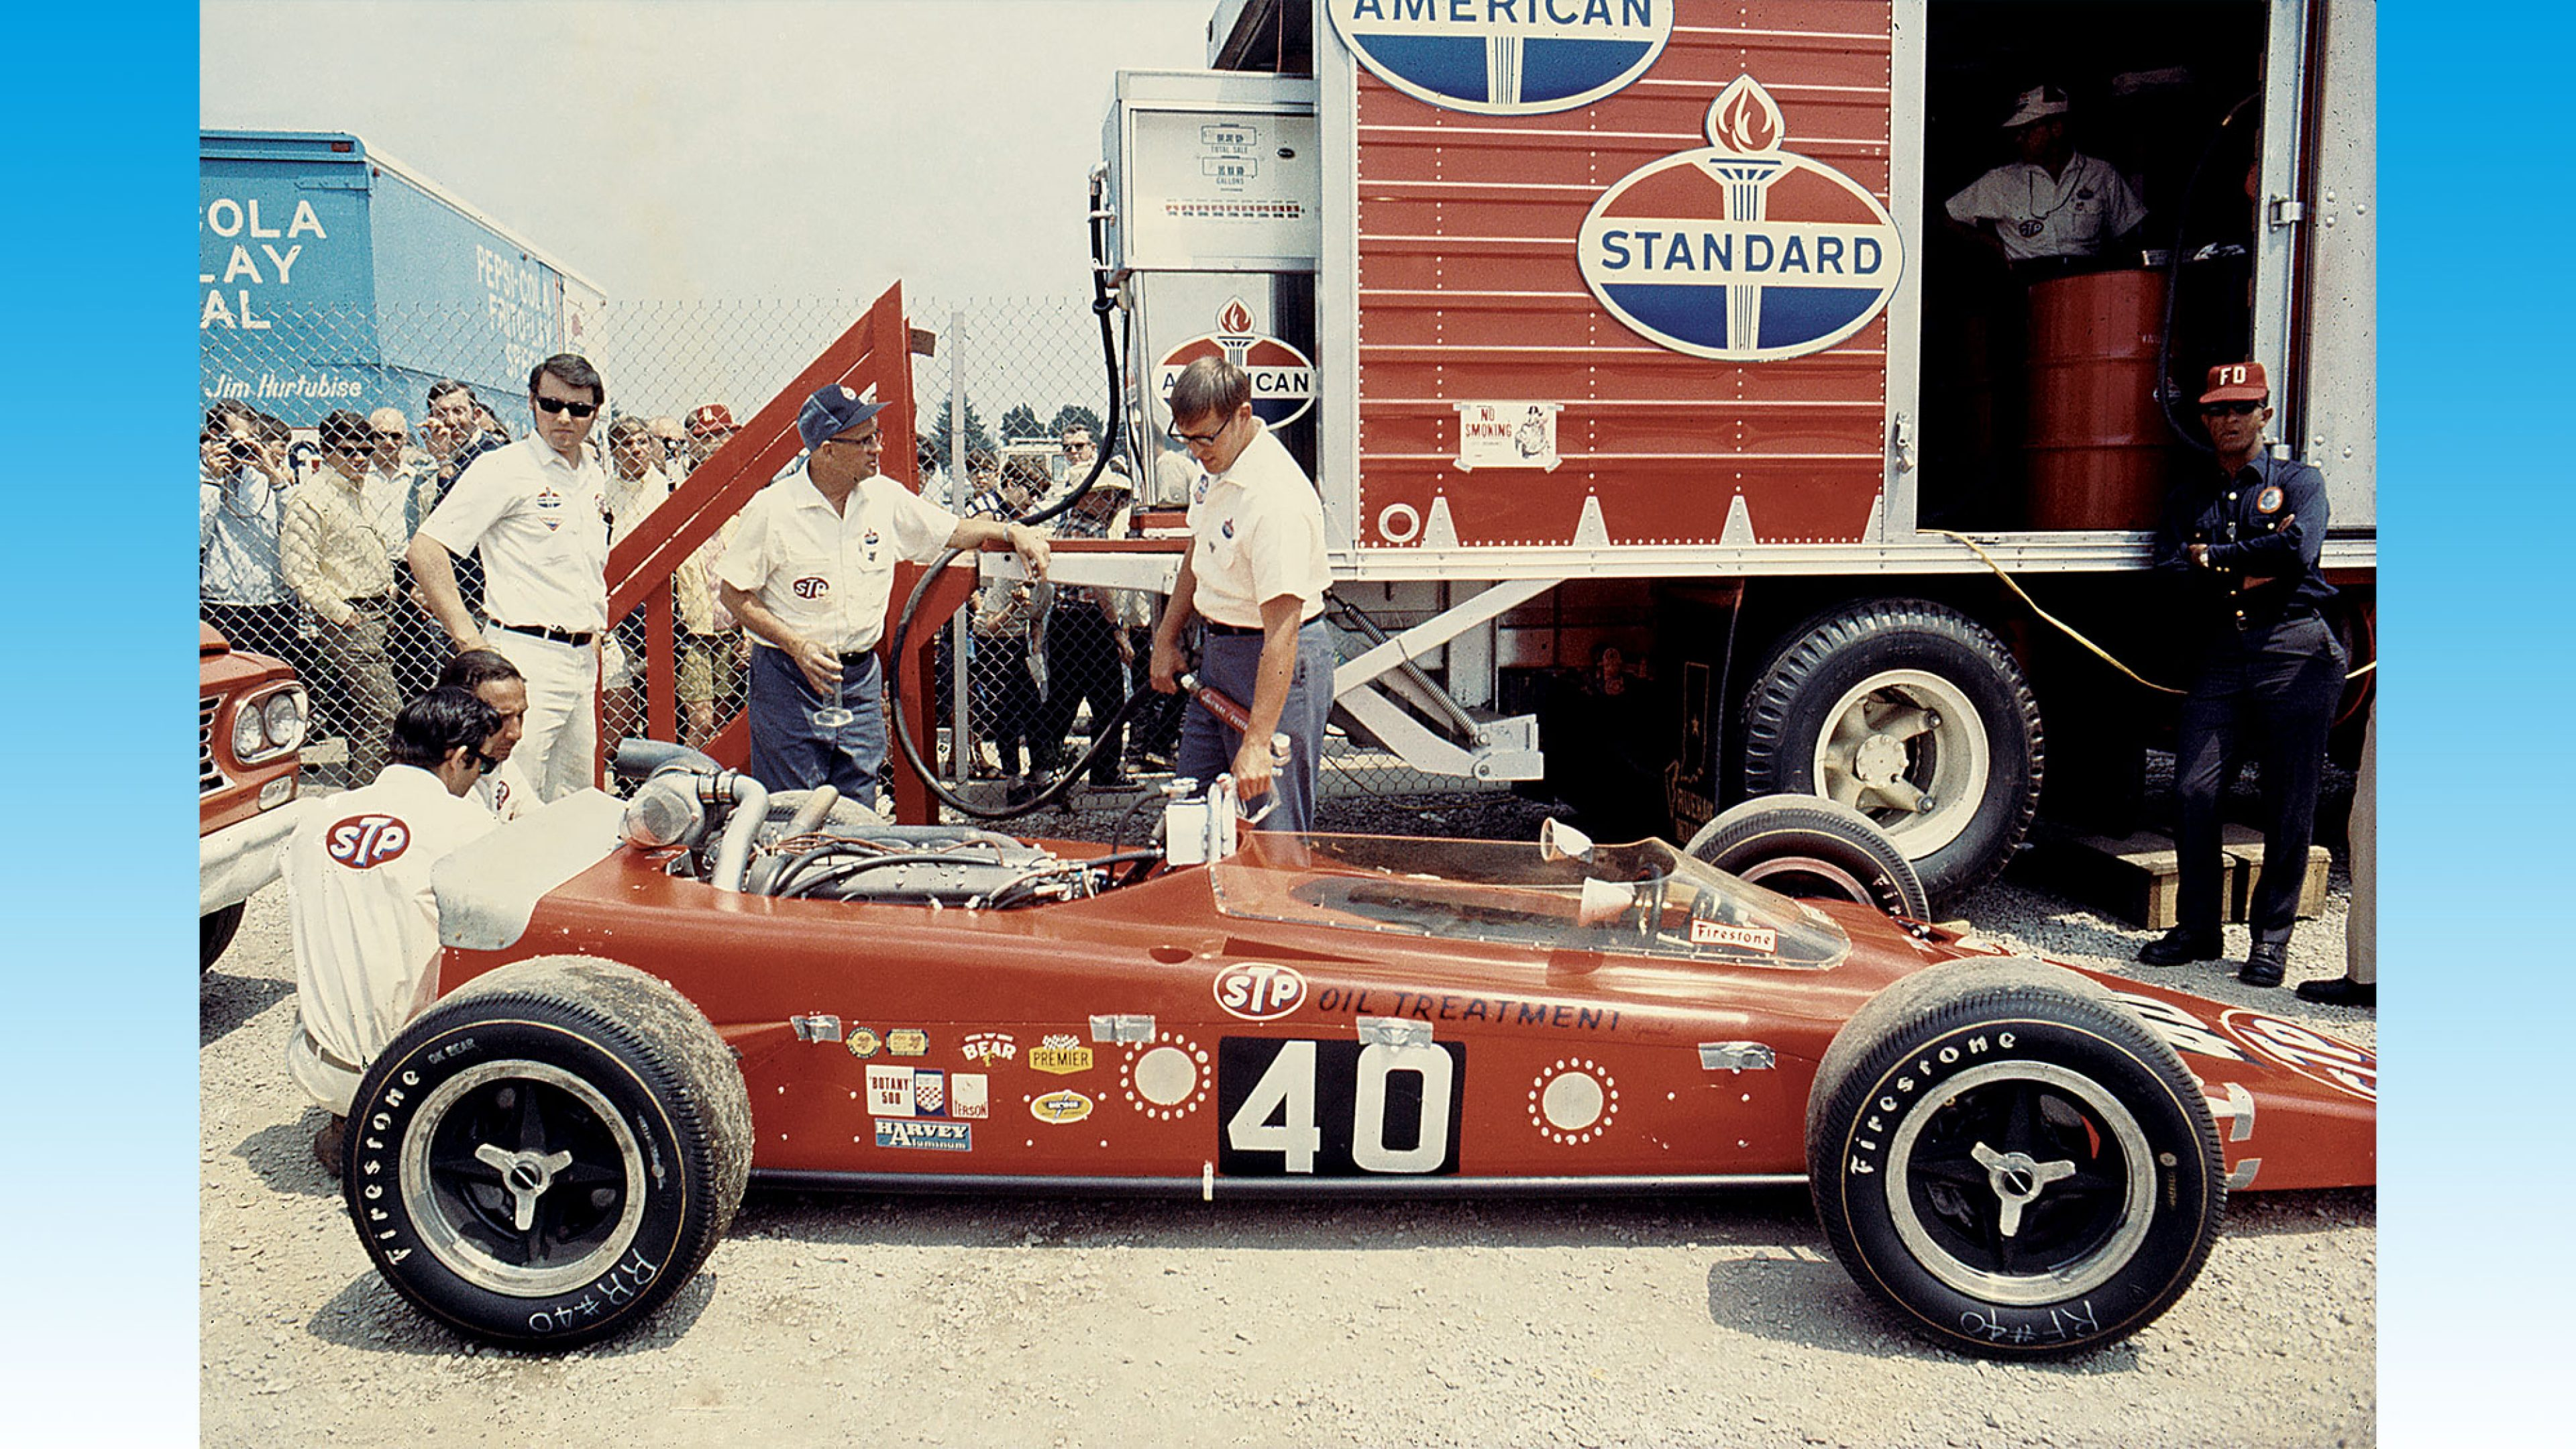 Fuelling the victorious Mario Andretti's Hawk-Ford with Standard fuel at the 1969 Indy 500